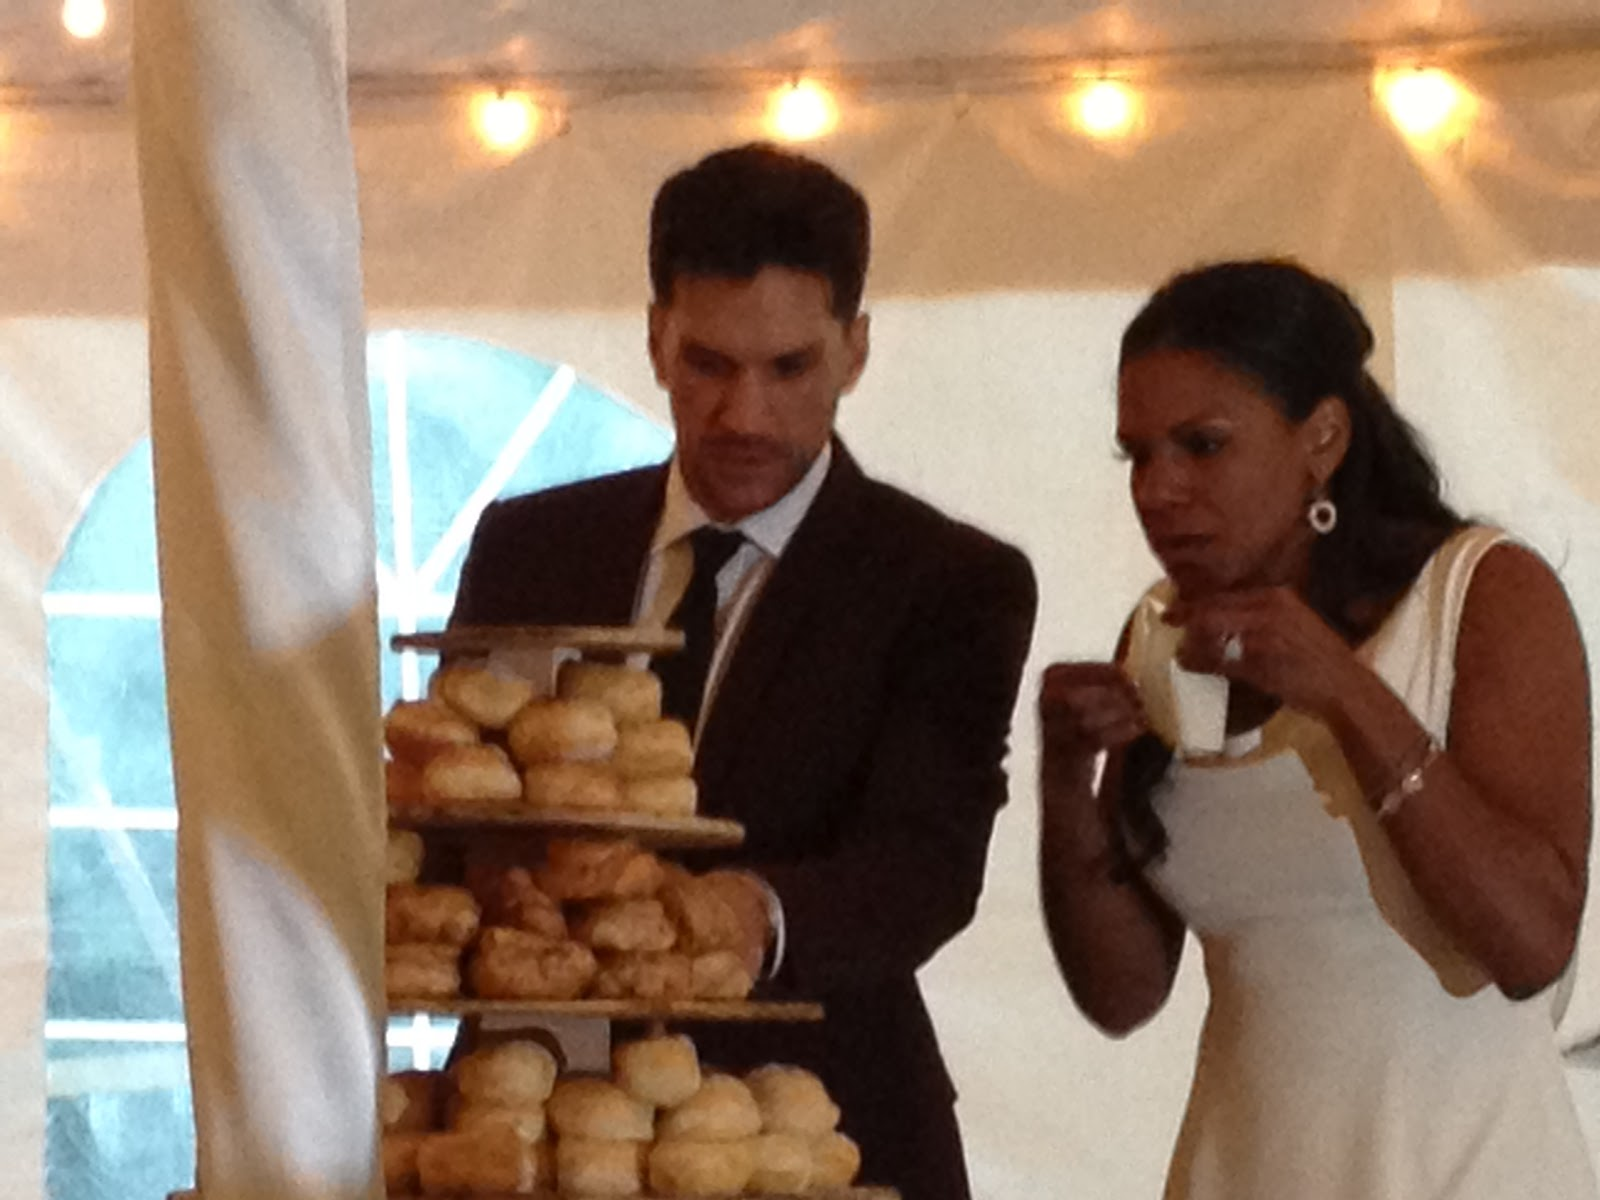 Red Carpet Wedding: Audra McDonald and Will Swenson - Red ...Will Swenson Audra Mcdonald Wedding